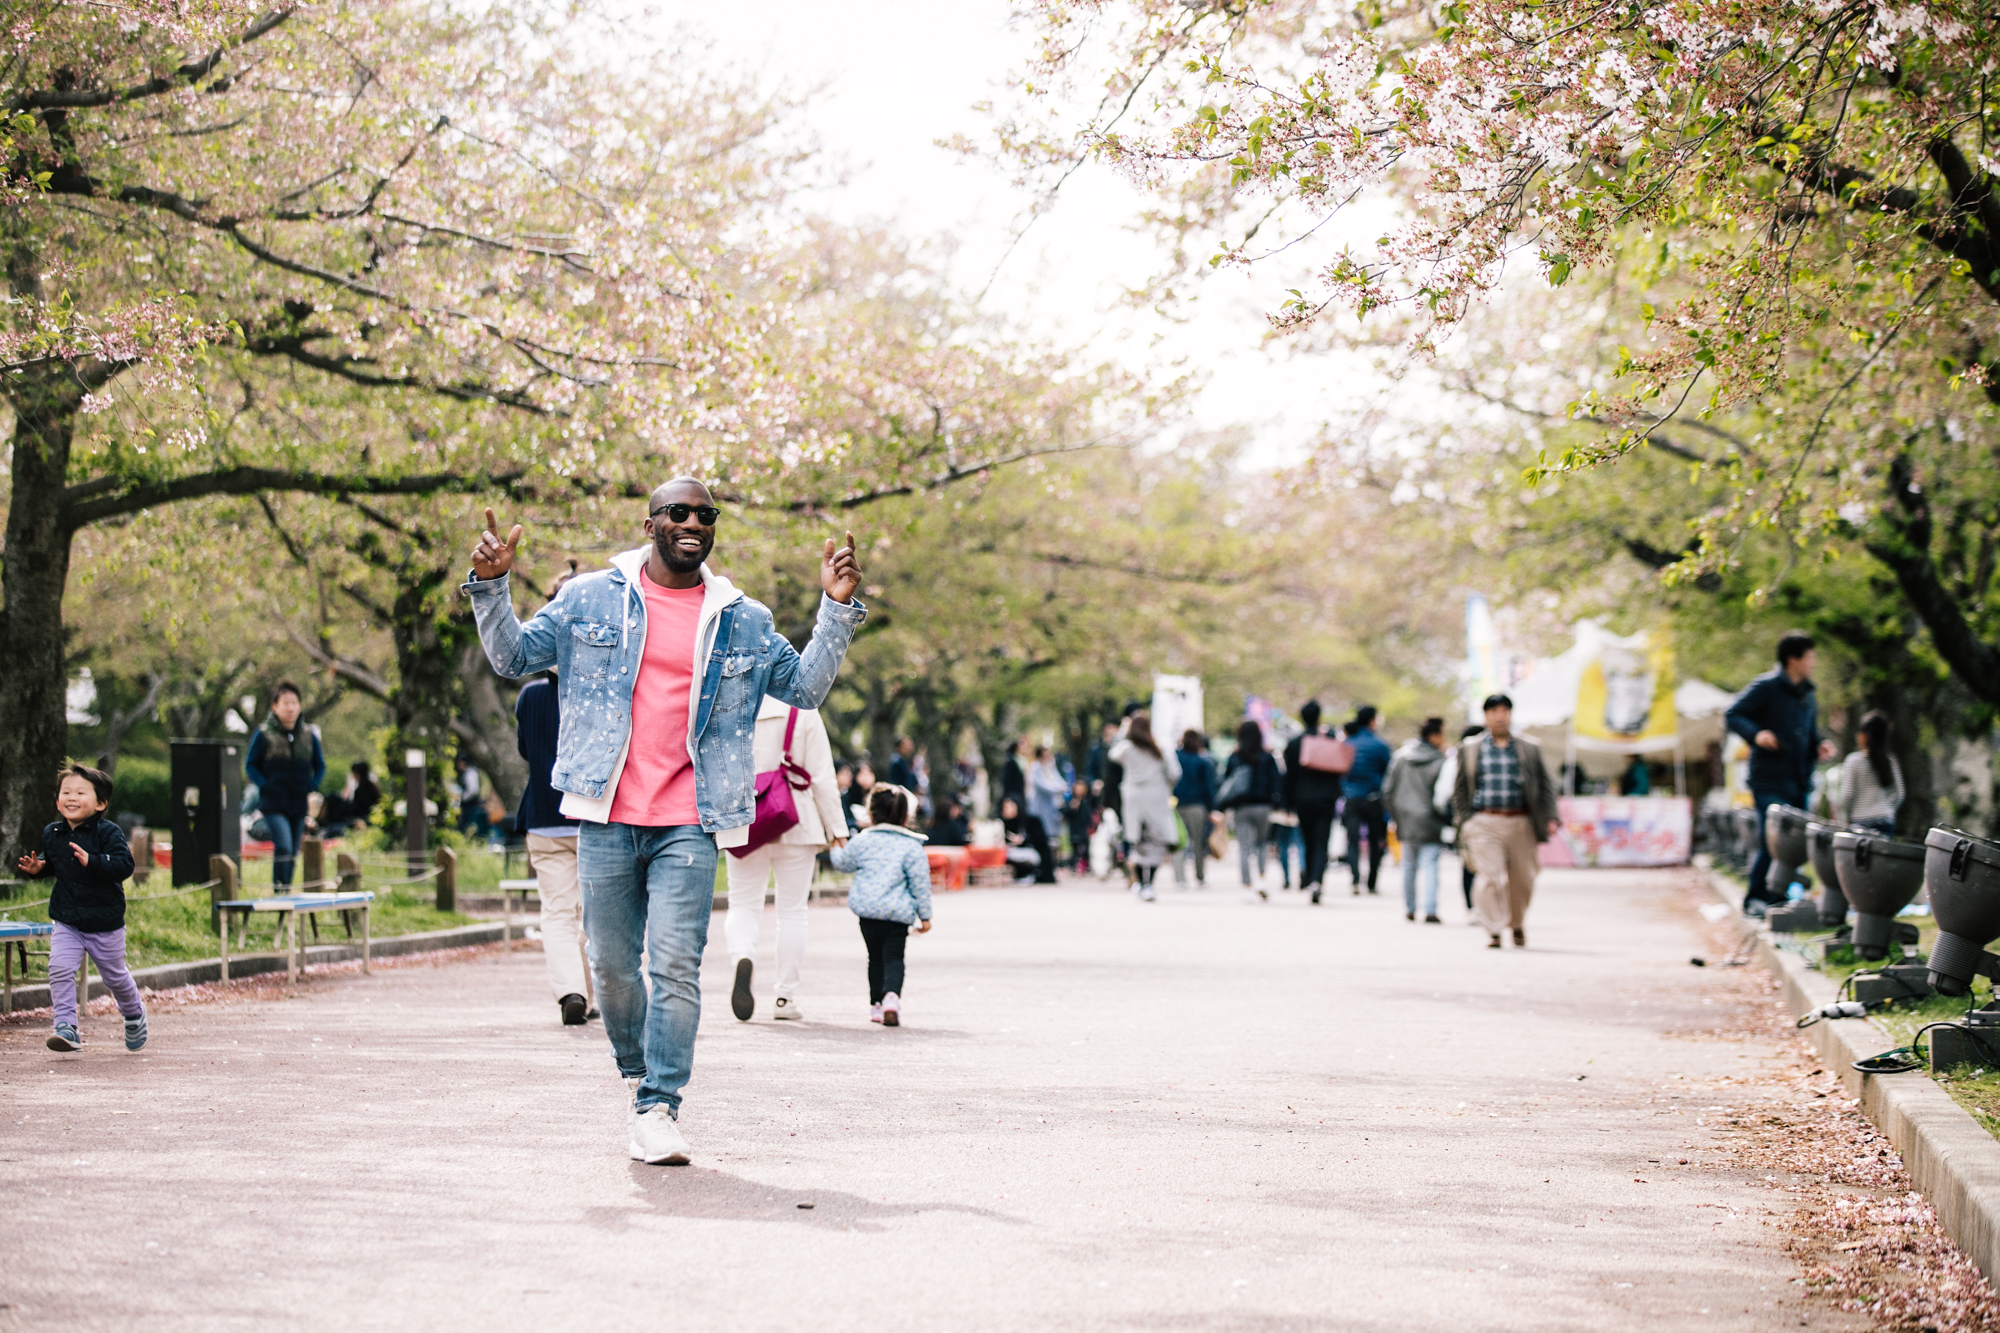 On the hunt for Cherry Blossoms in Expo 70 Commemorative Park